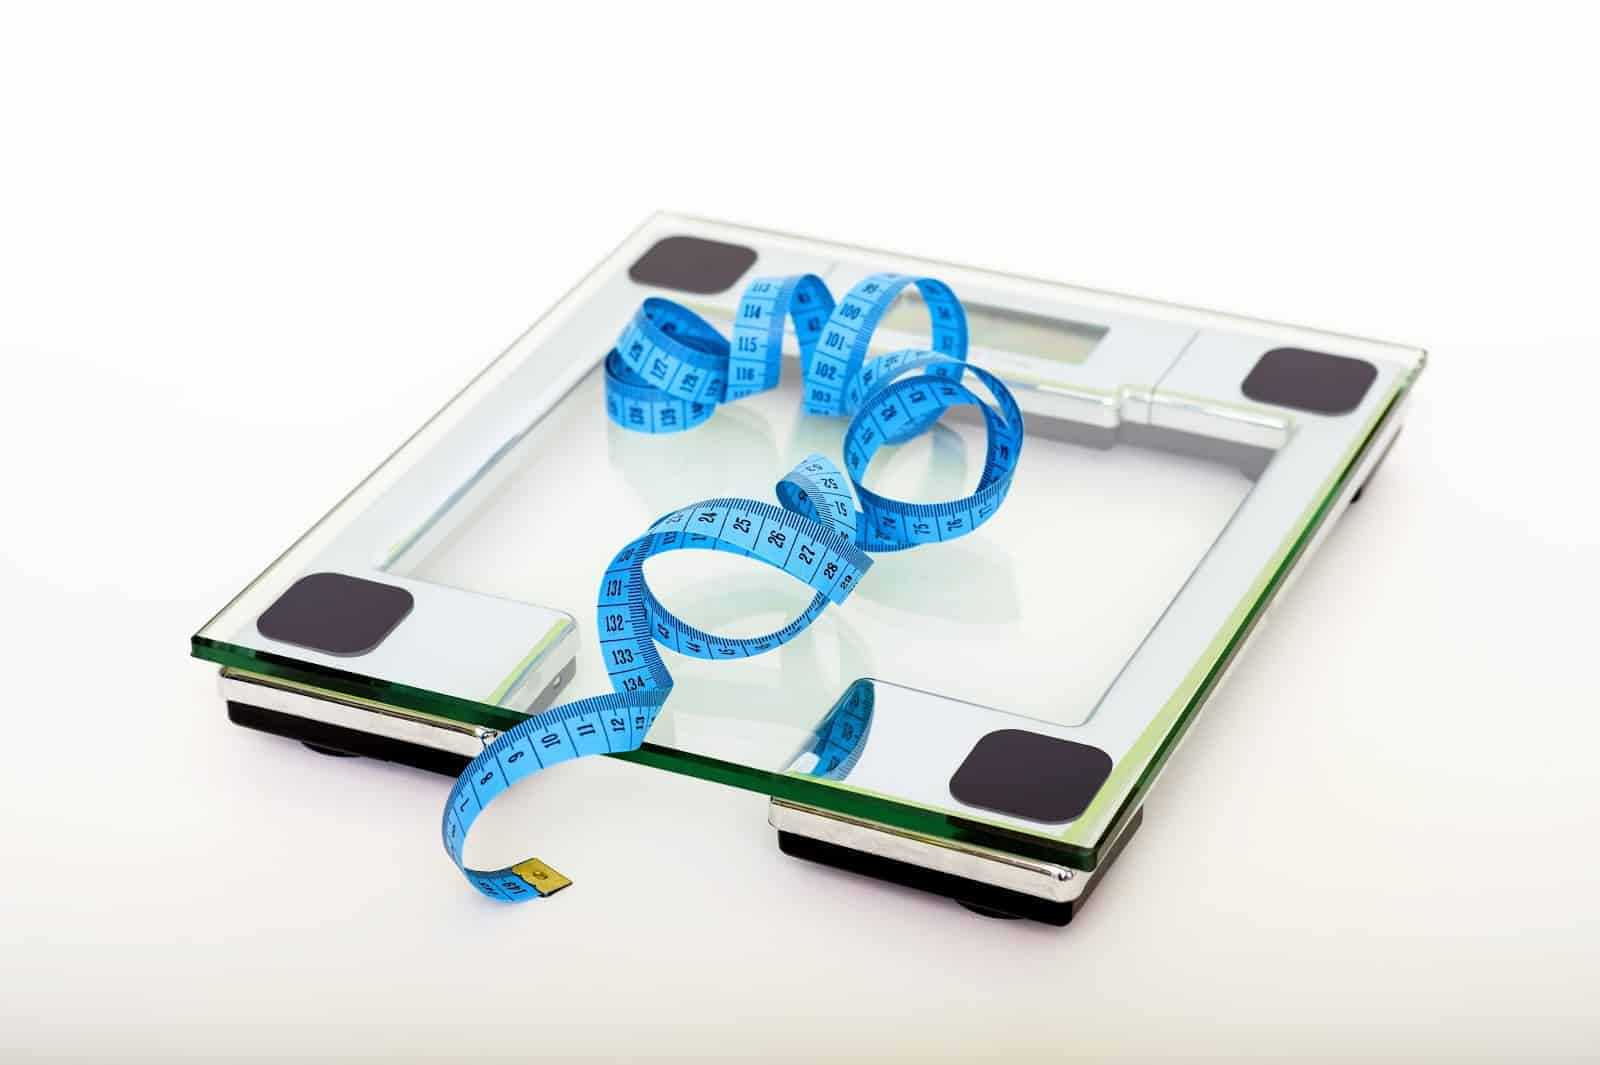 Scale and measuring tape to demonstrate whether intermittent fasting can help you lose weight.